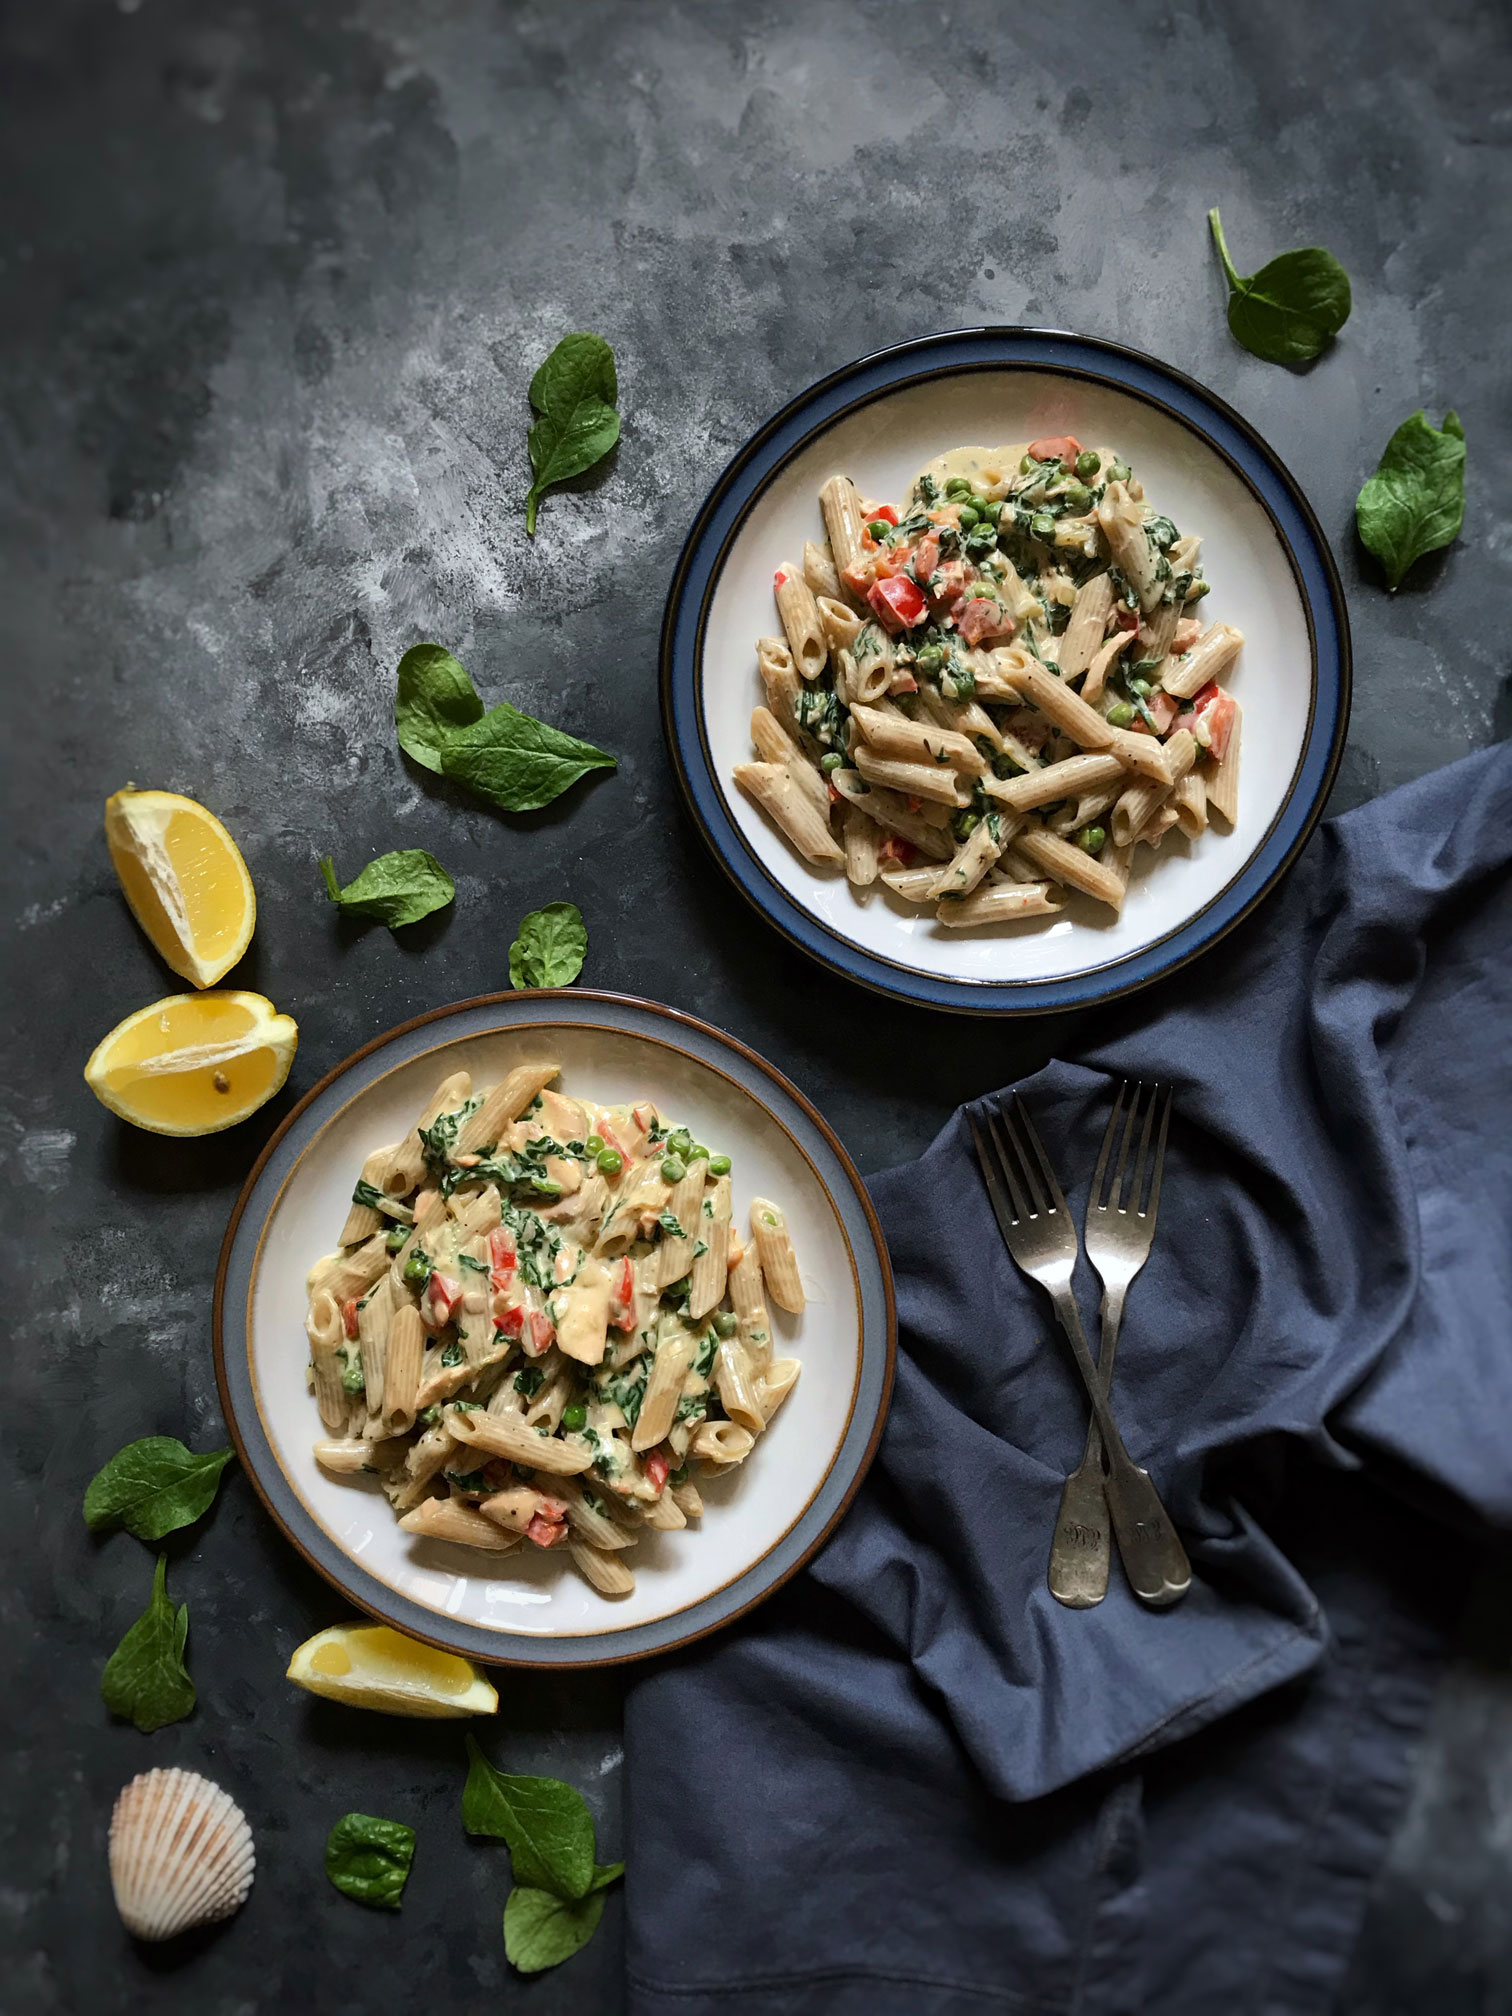 Salmon and veggies whole-wheat pasta in a dairy free cream sauce